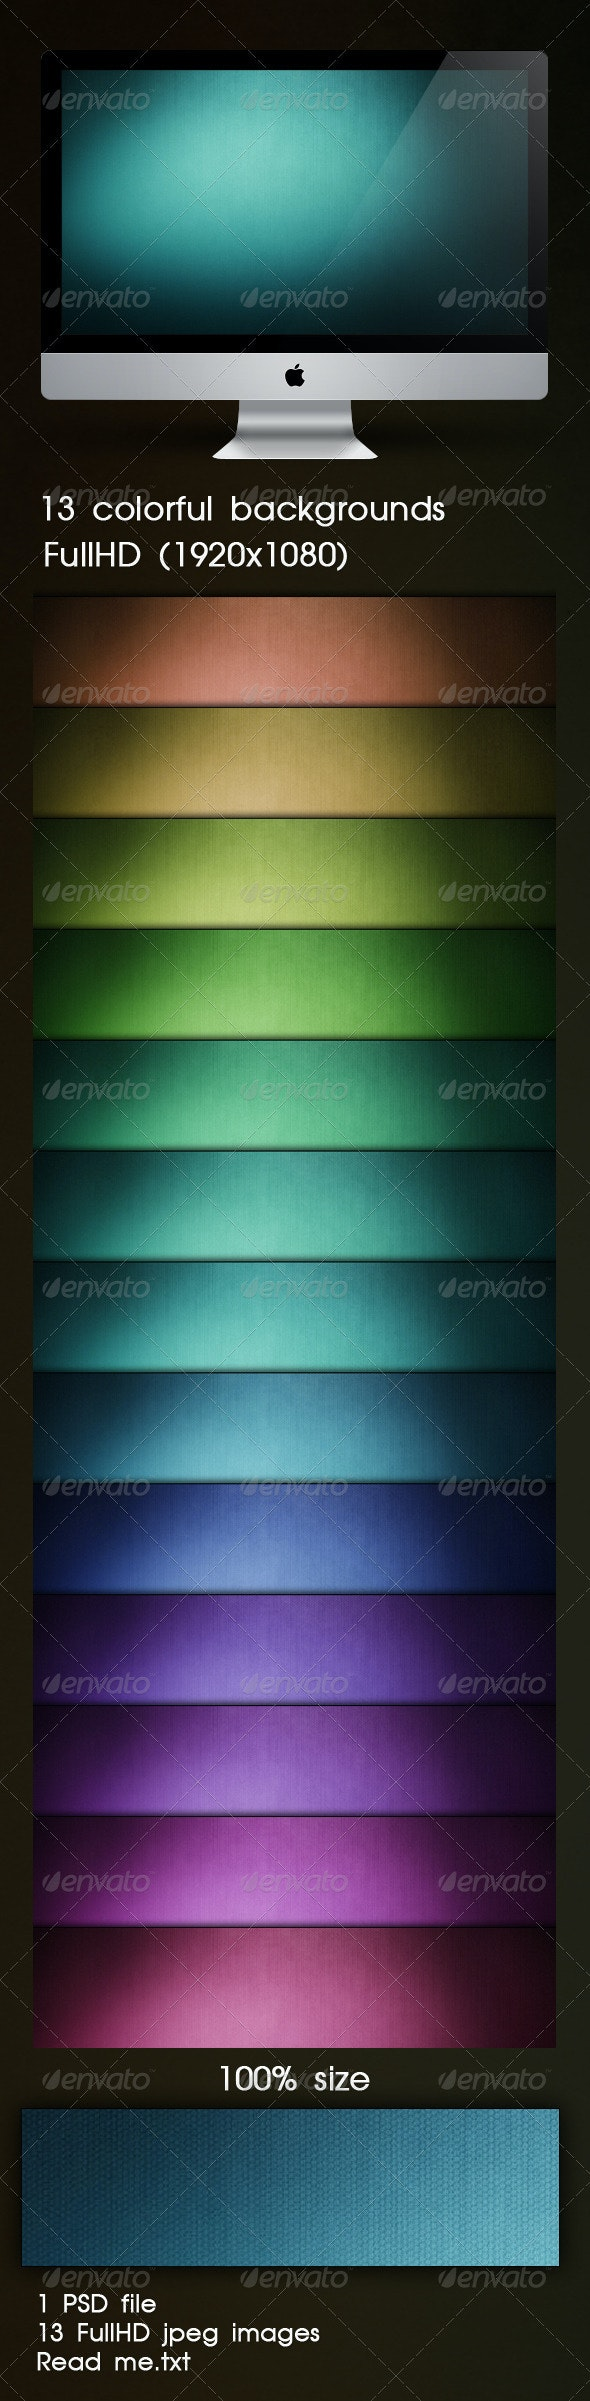 13 Colorful Backgrounds FulHD - Backgrounds Graphics